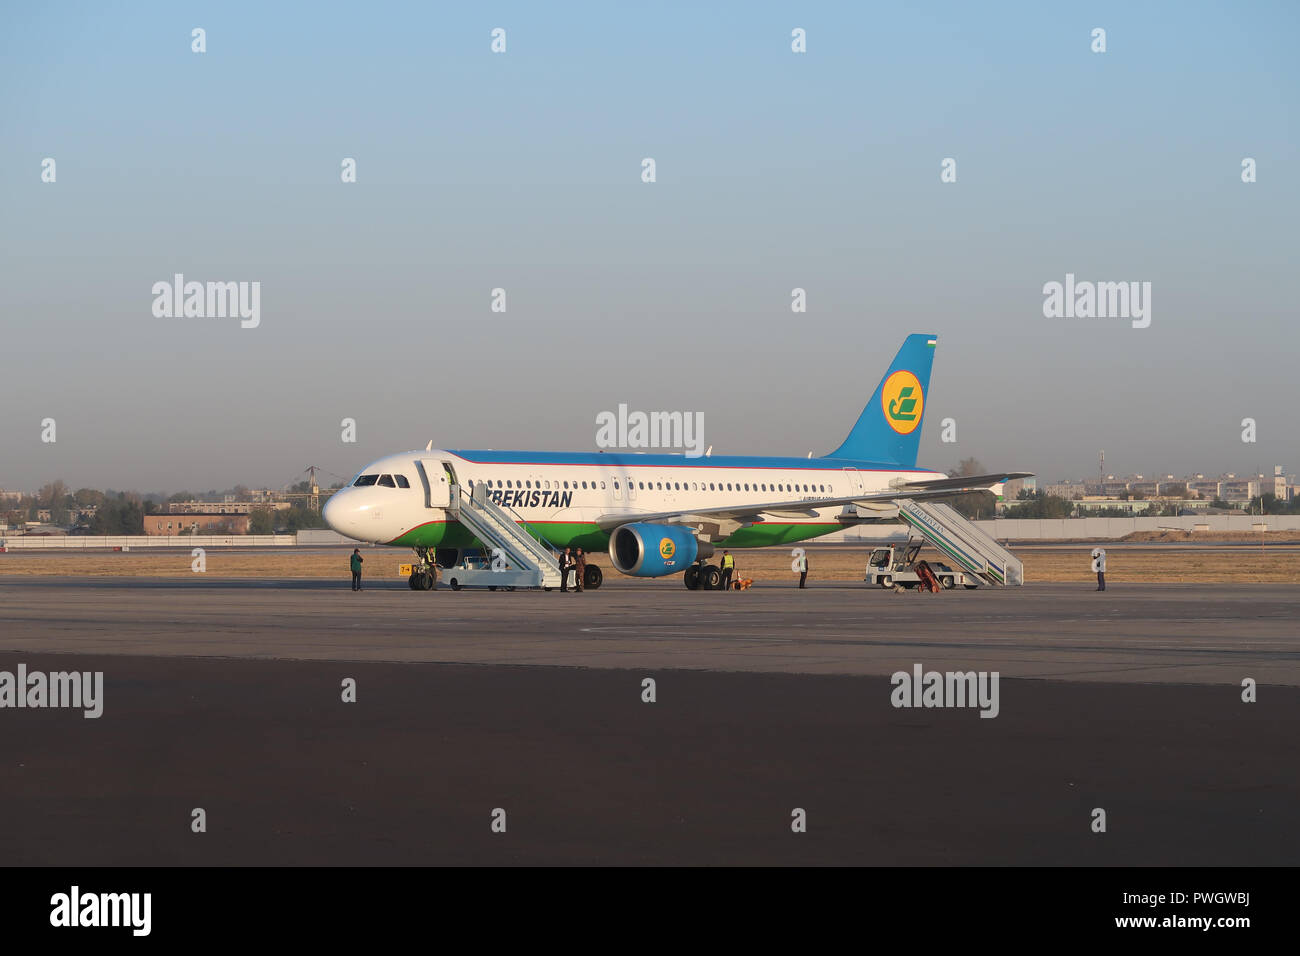 An airplane of National Air Company Uzbekistan Airways stand on the tarmac at Tashkent Airport Uzbekistan - Stock Image